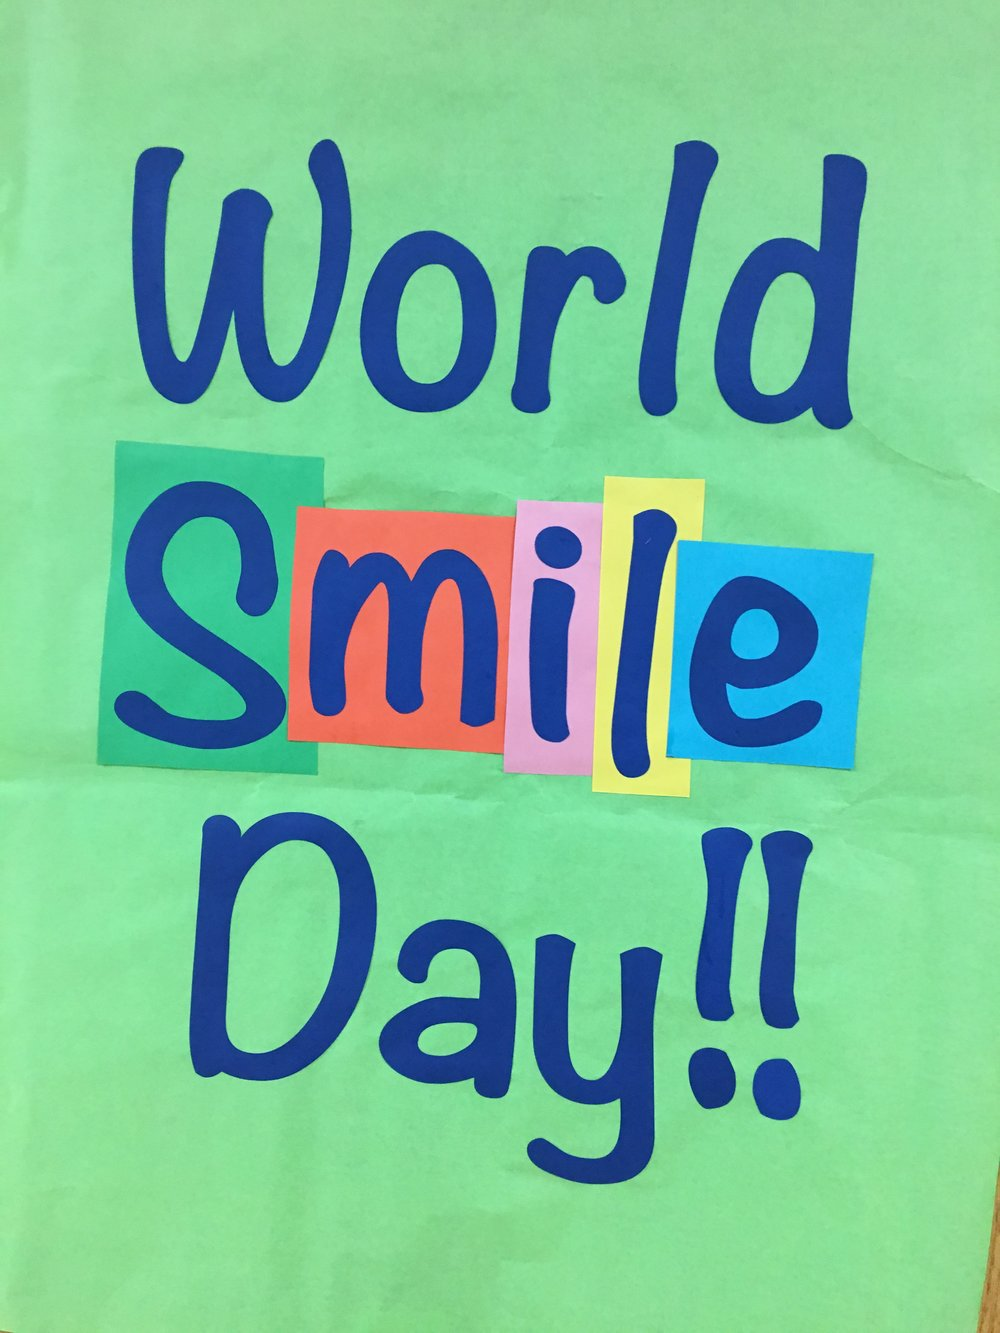 World Smile Day Today! Did you know…smiling boosts your immune system and it takes 5-53 muscles to smile!